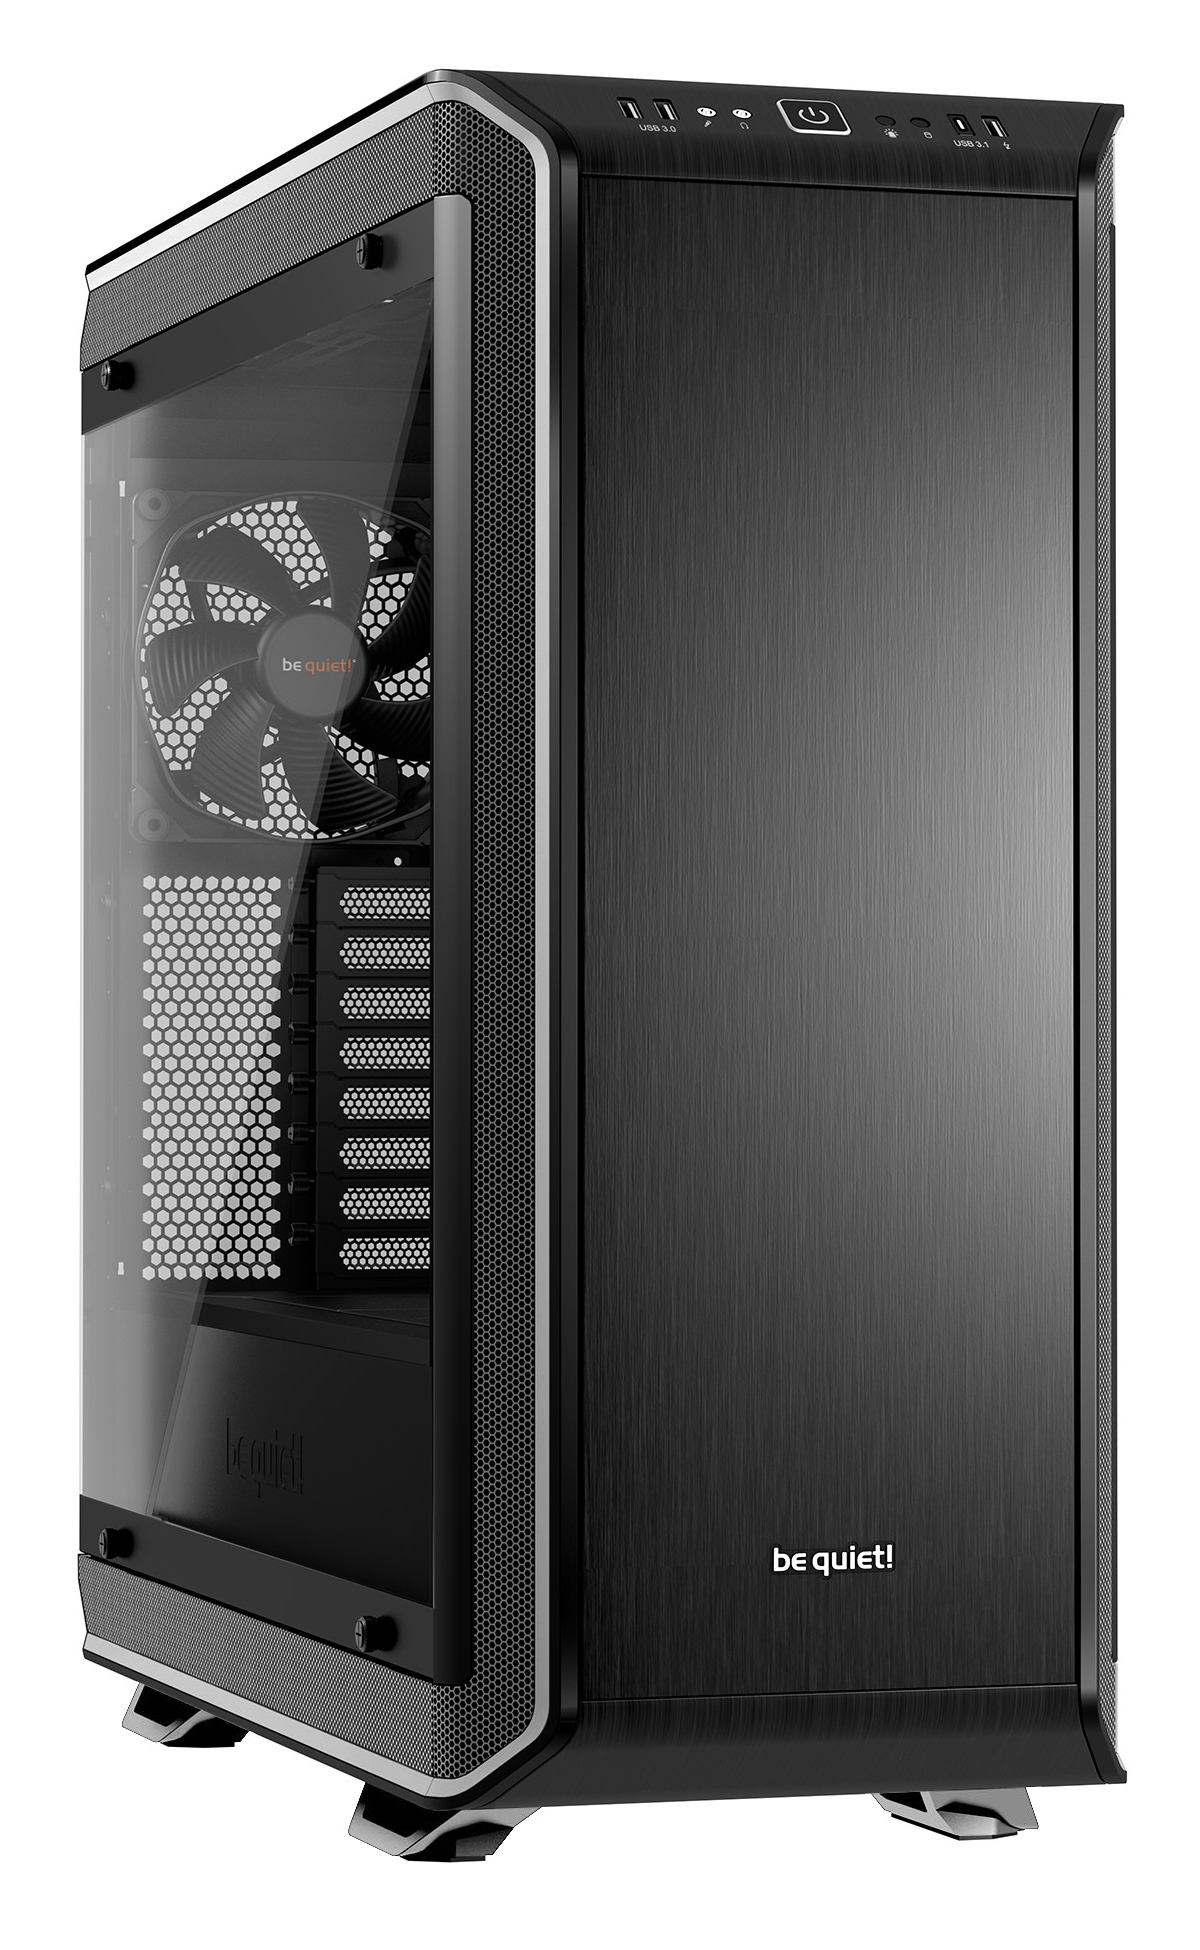 be quiet! Dark Base Pro 900 rev. 2 Full-Tower Black,Silver